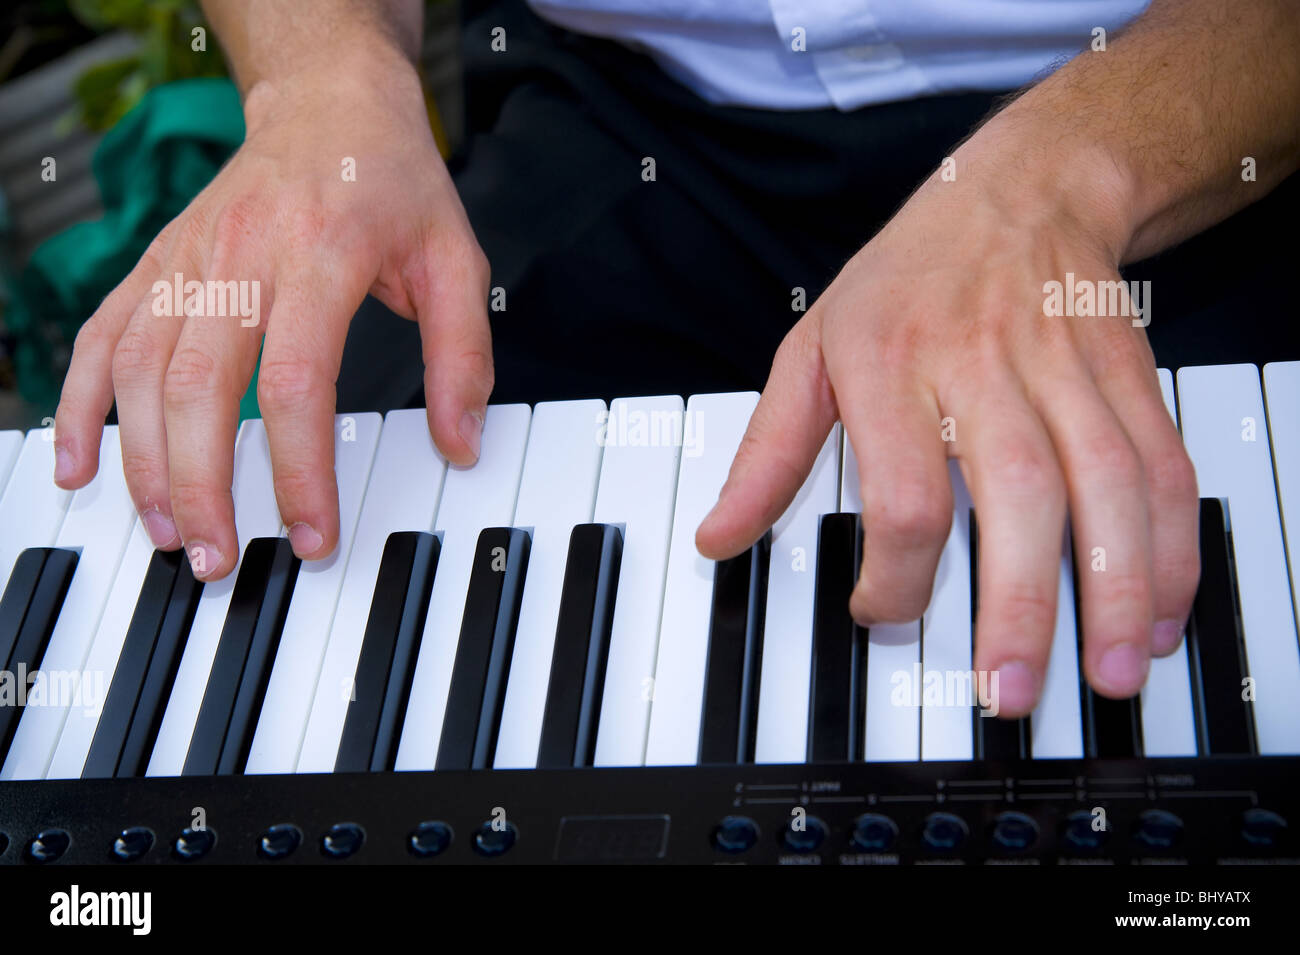 Hands playing piano - Stock Image